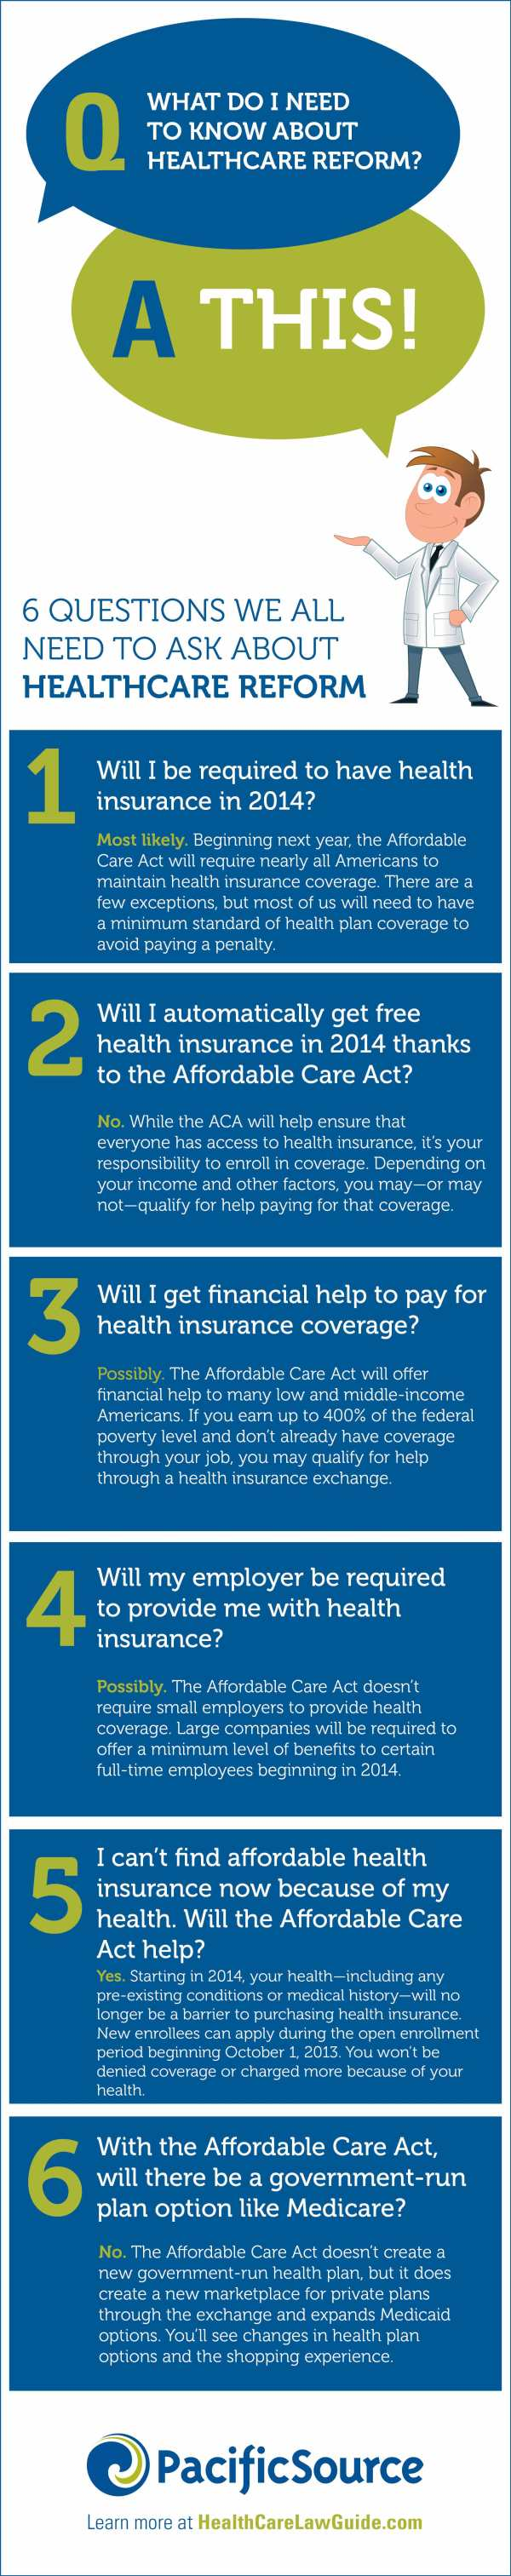 Healthcare-Reform-Questions_infographic-blog